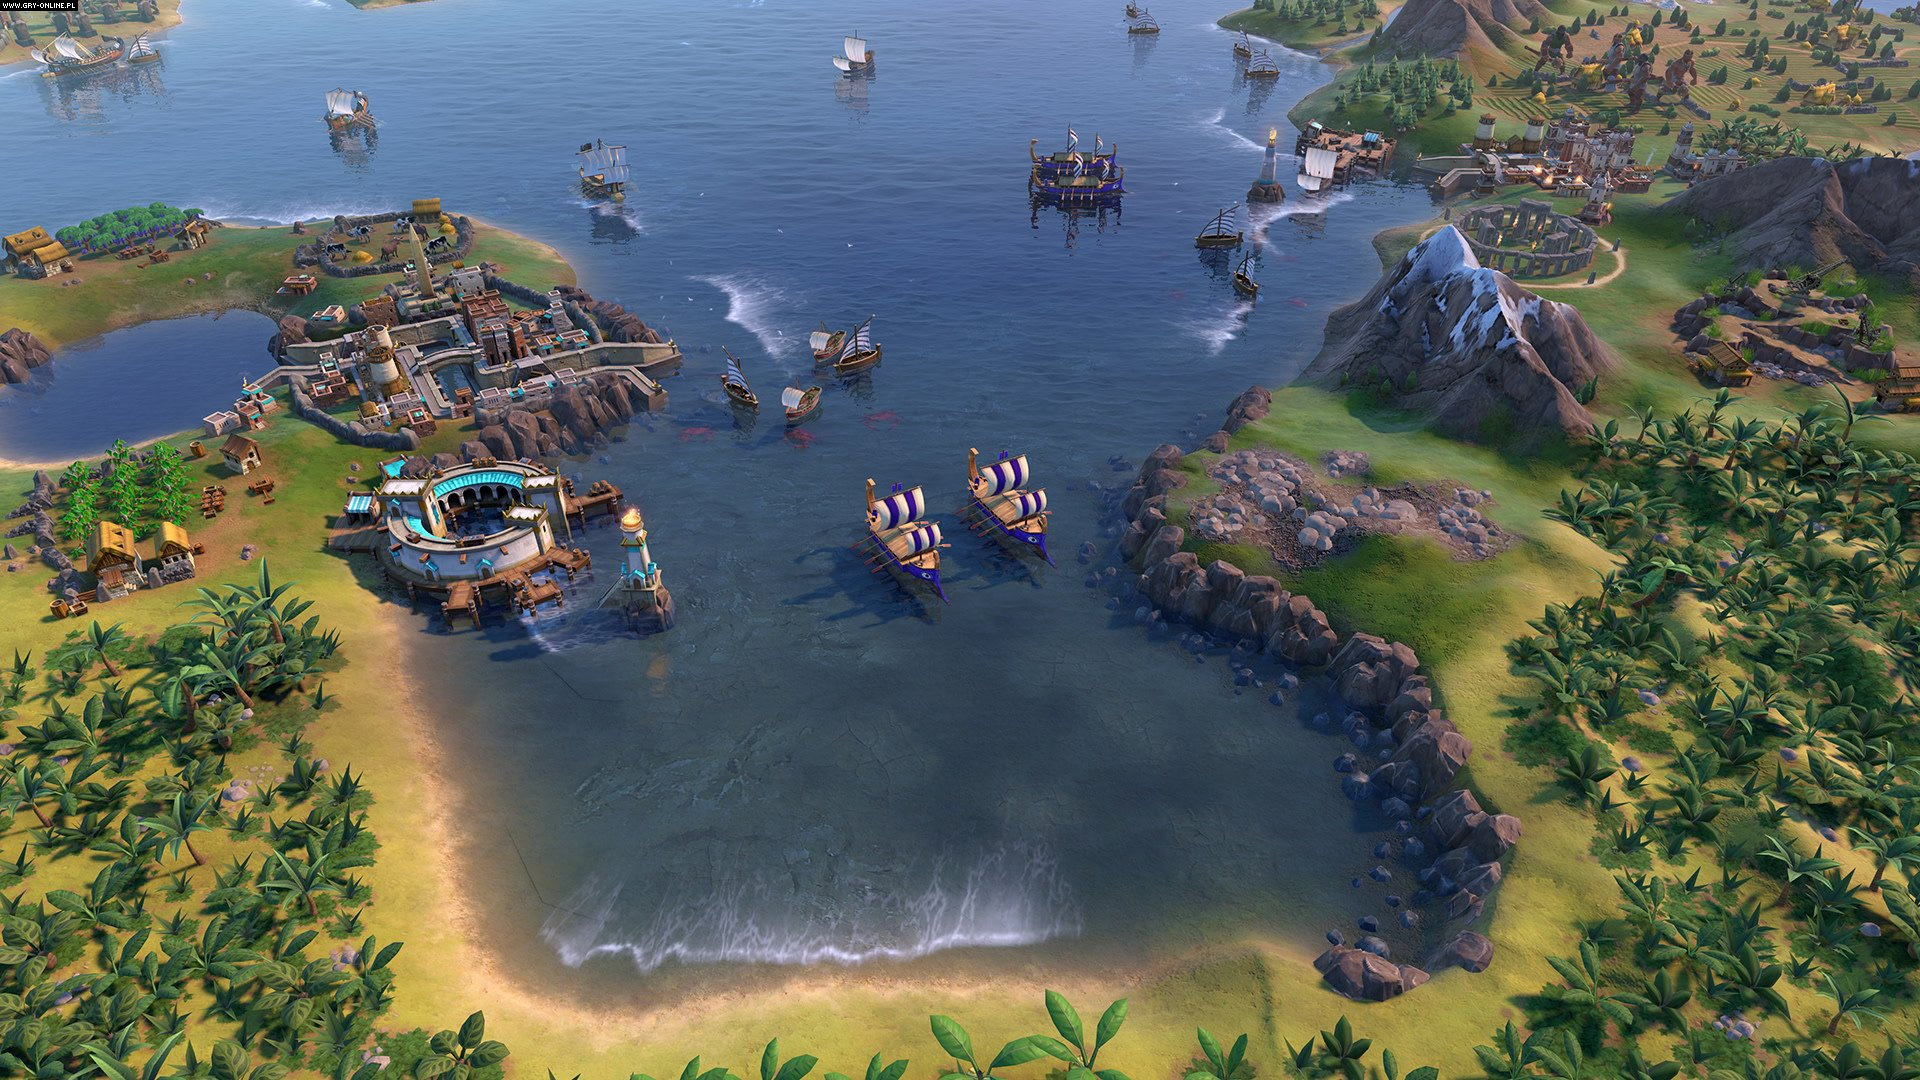 Sid Meier's Civilization VI: Gathering Storm PC Games Image 2/20, Firaxis Games, 2K Games